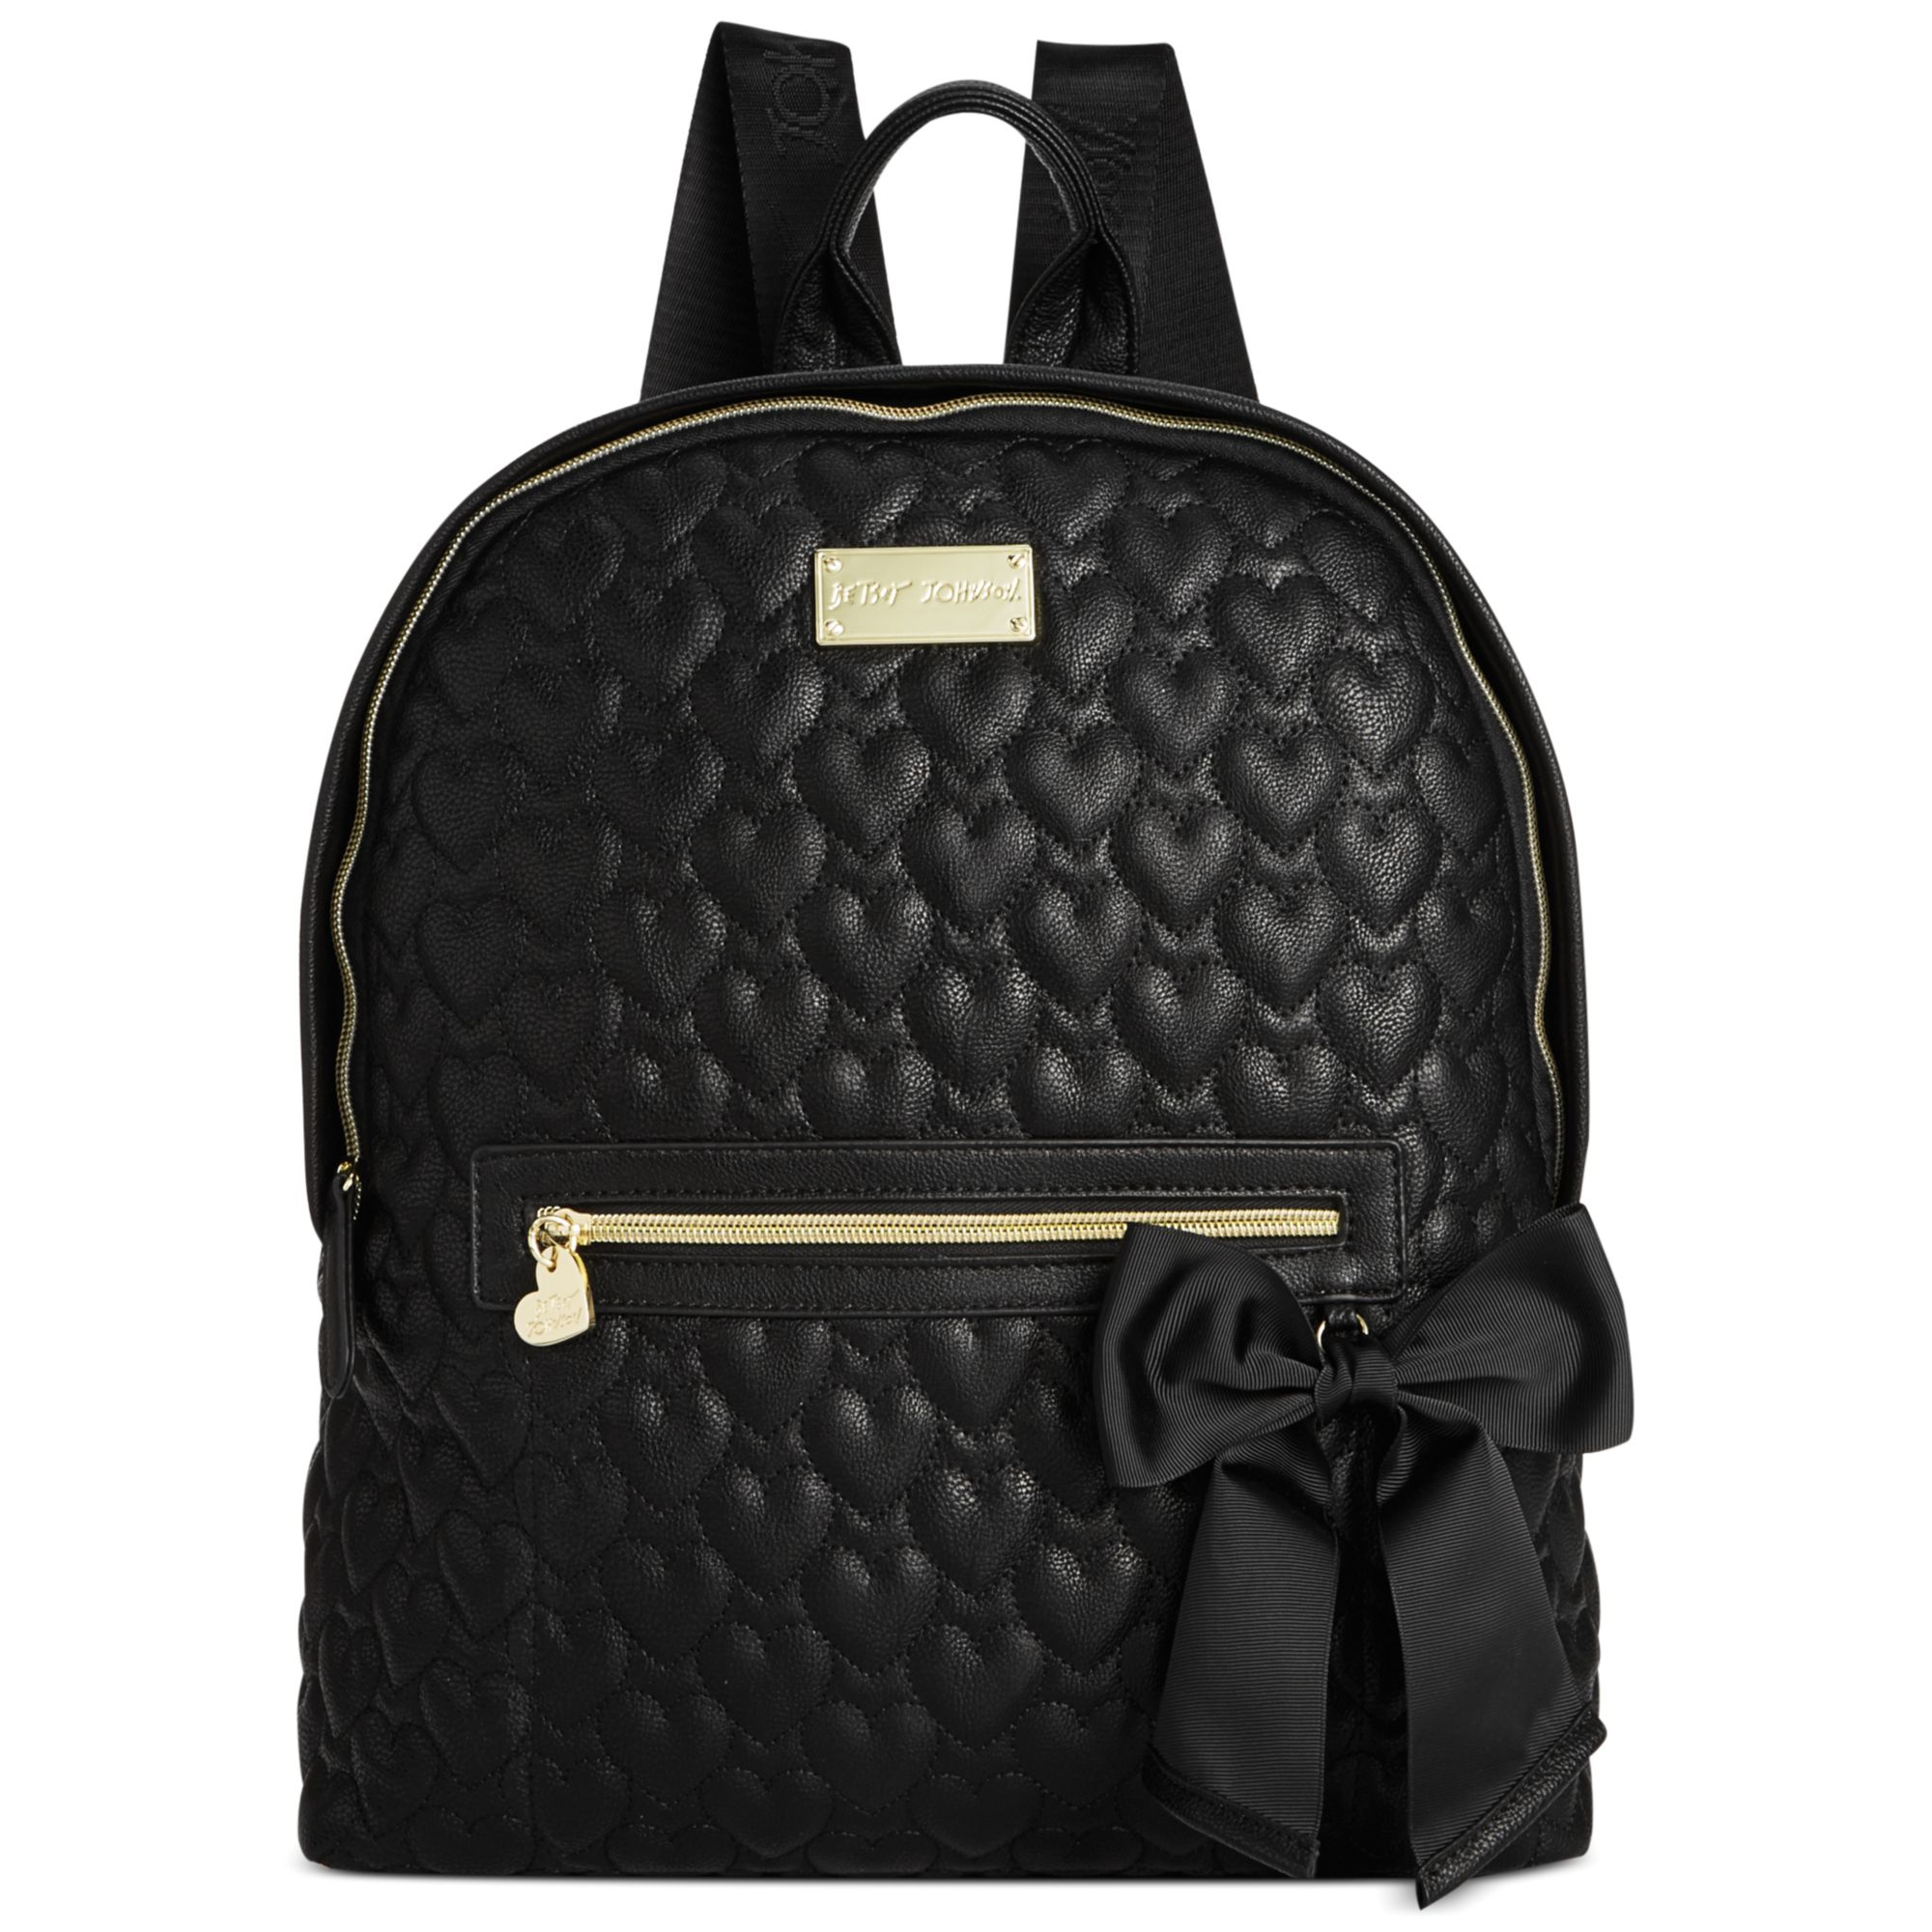 Betsey Johnson Quilted Backpack In Black Black Quilted